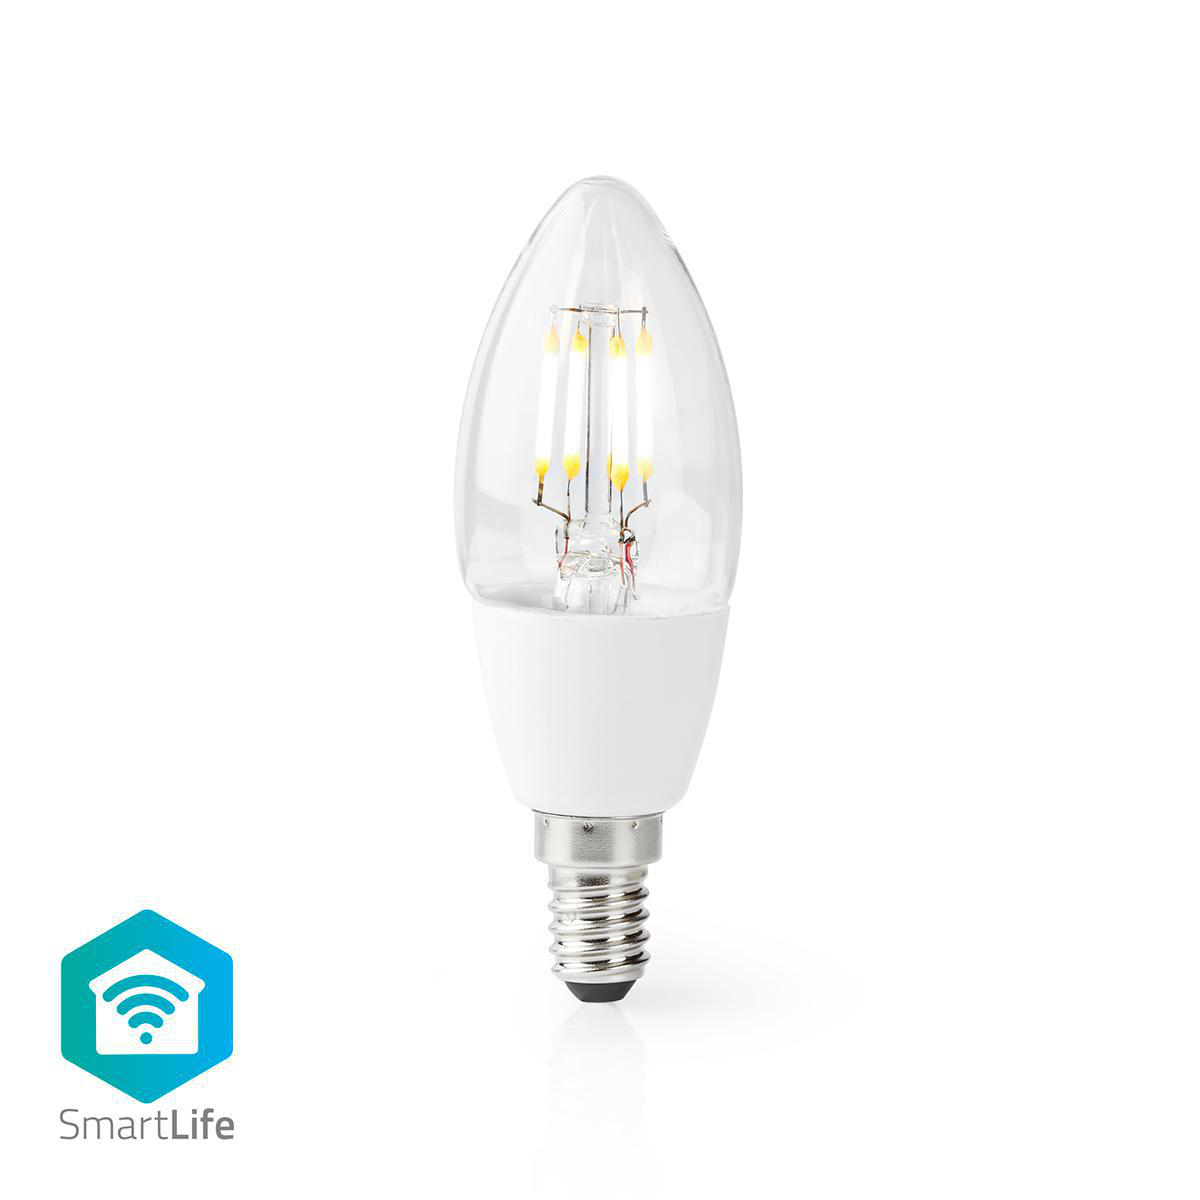 Slimme Led Lamp E14 fitting 2700K - Warm wit - vooraanzicht lamp